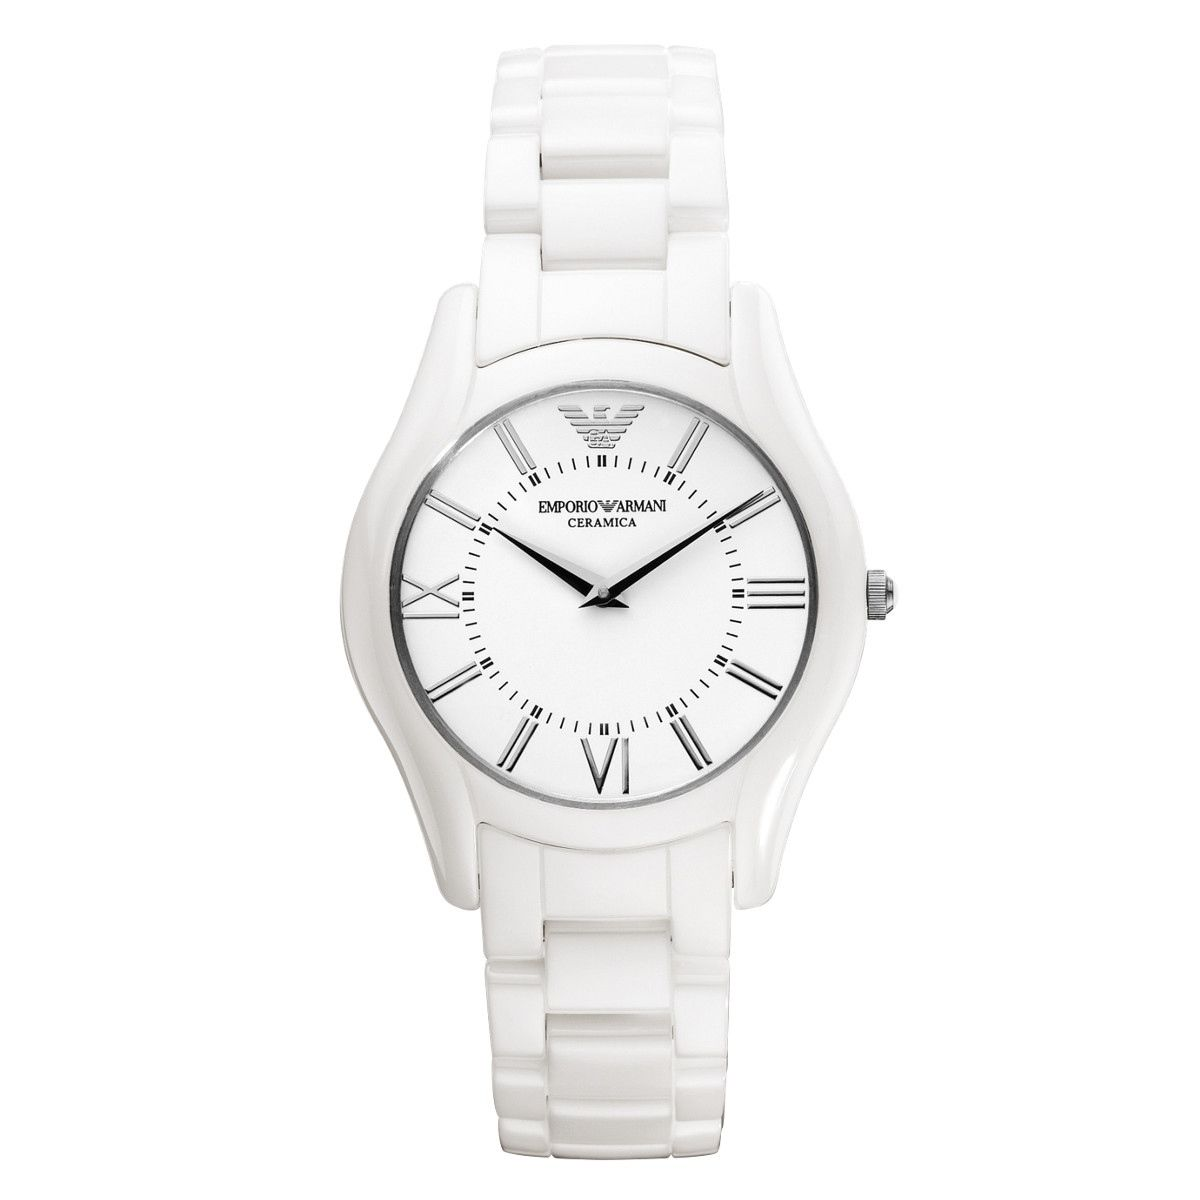 100% Authentic Emporio Armani Women's Super Slim Ceramic ...